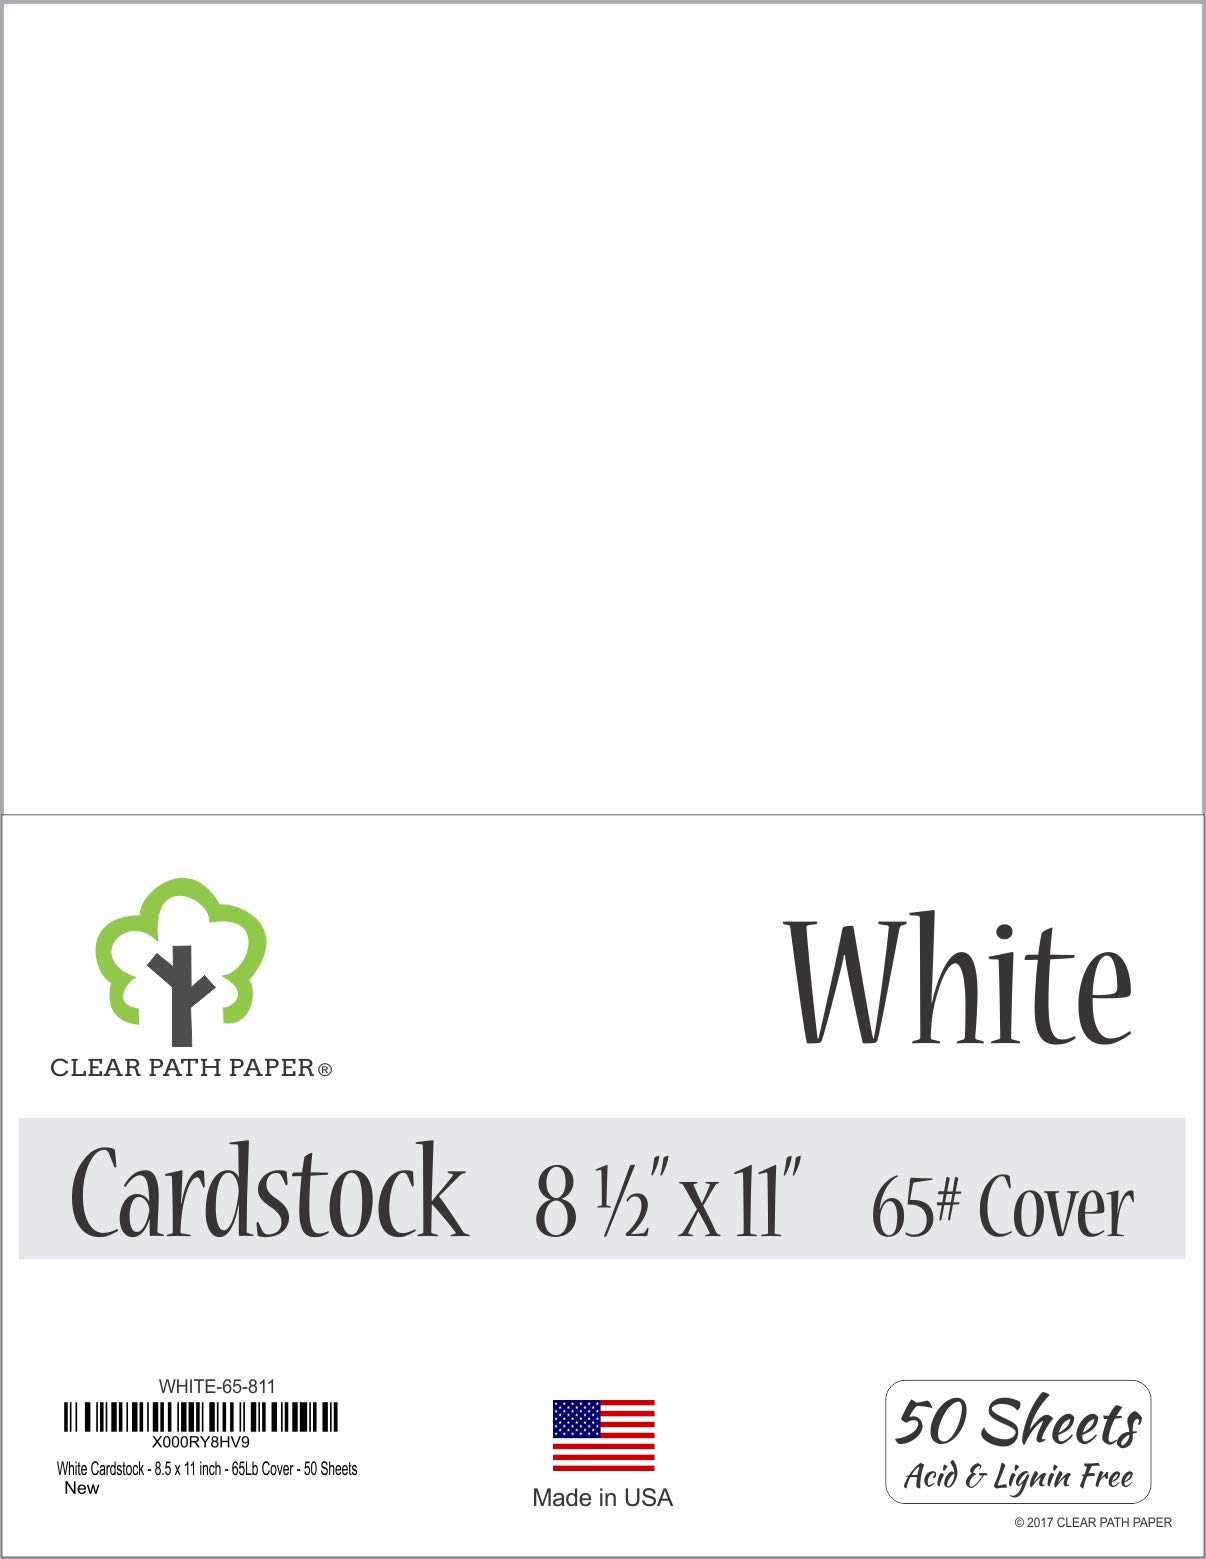 White Cardstock - 8.5 x 11 inch - 65Lb Cover - 50 Sheets